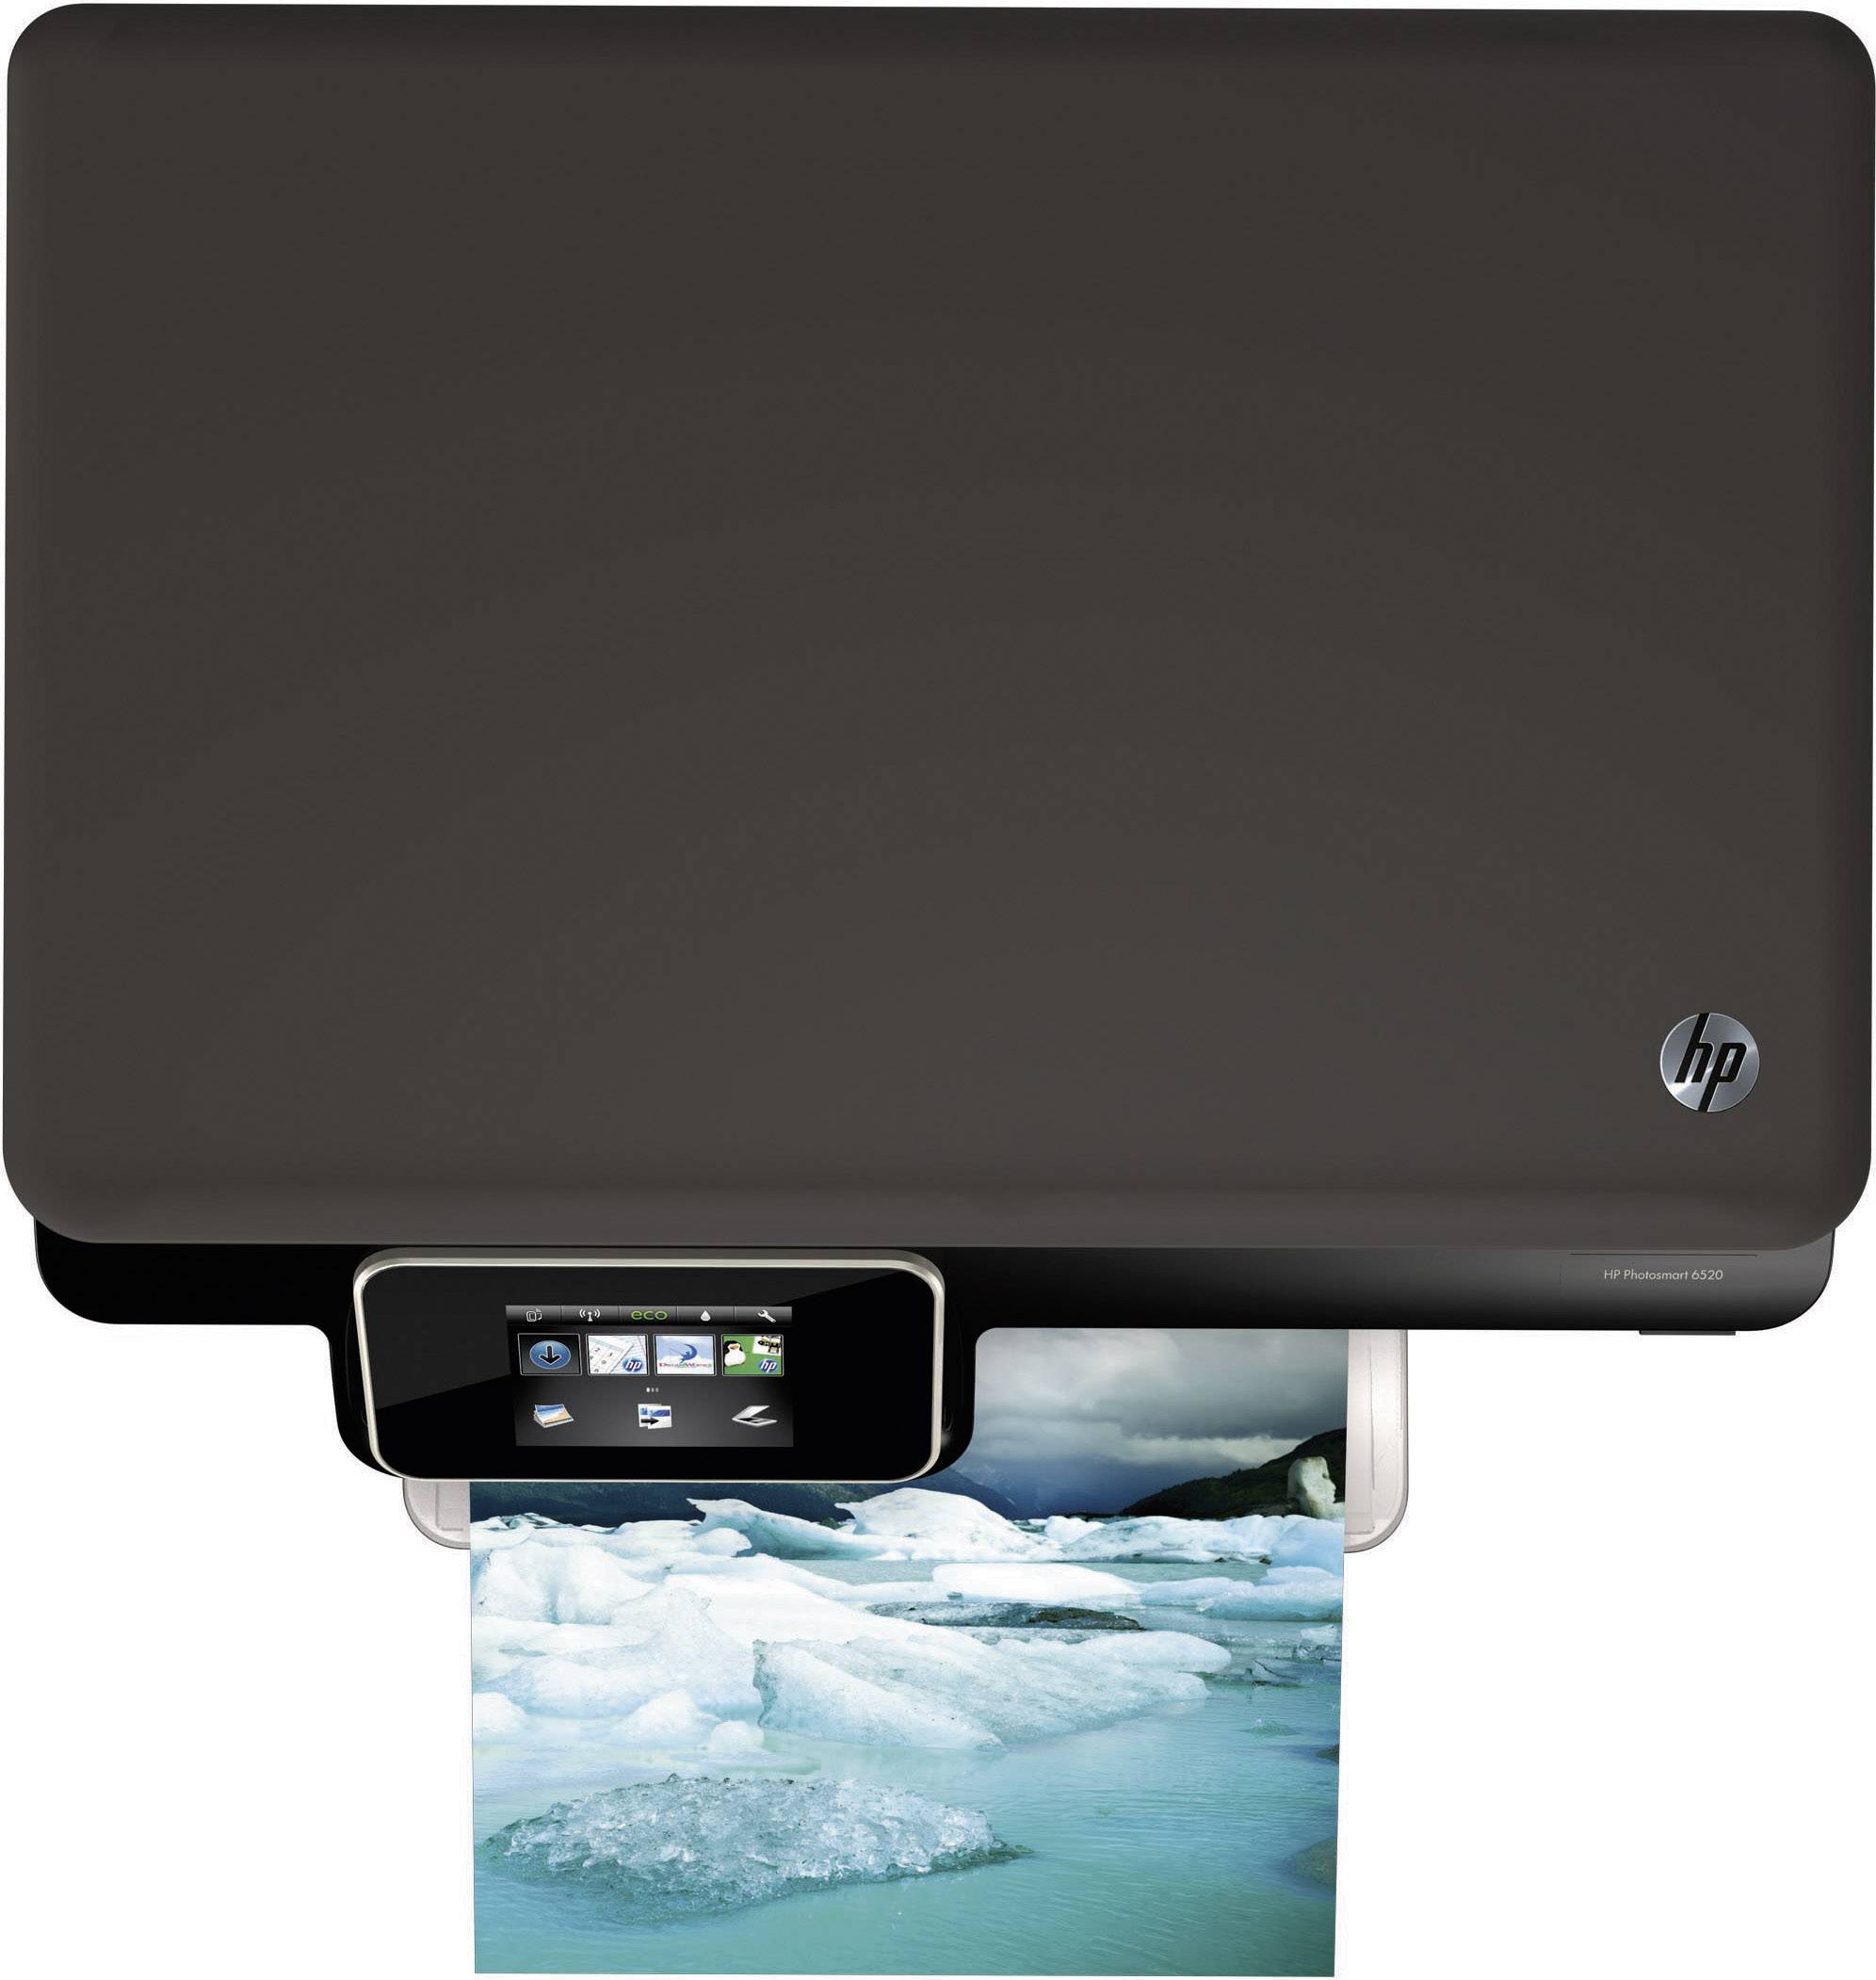 HP Photosmart 6520 E-All-in-On, Multifunctioneel Apparaat